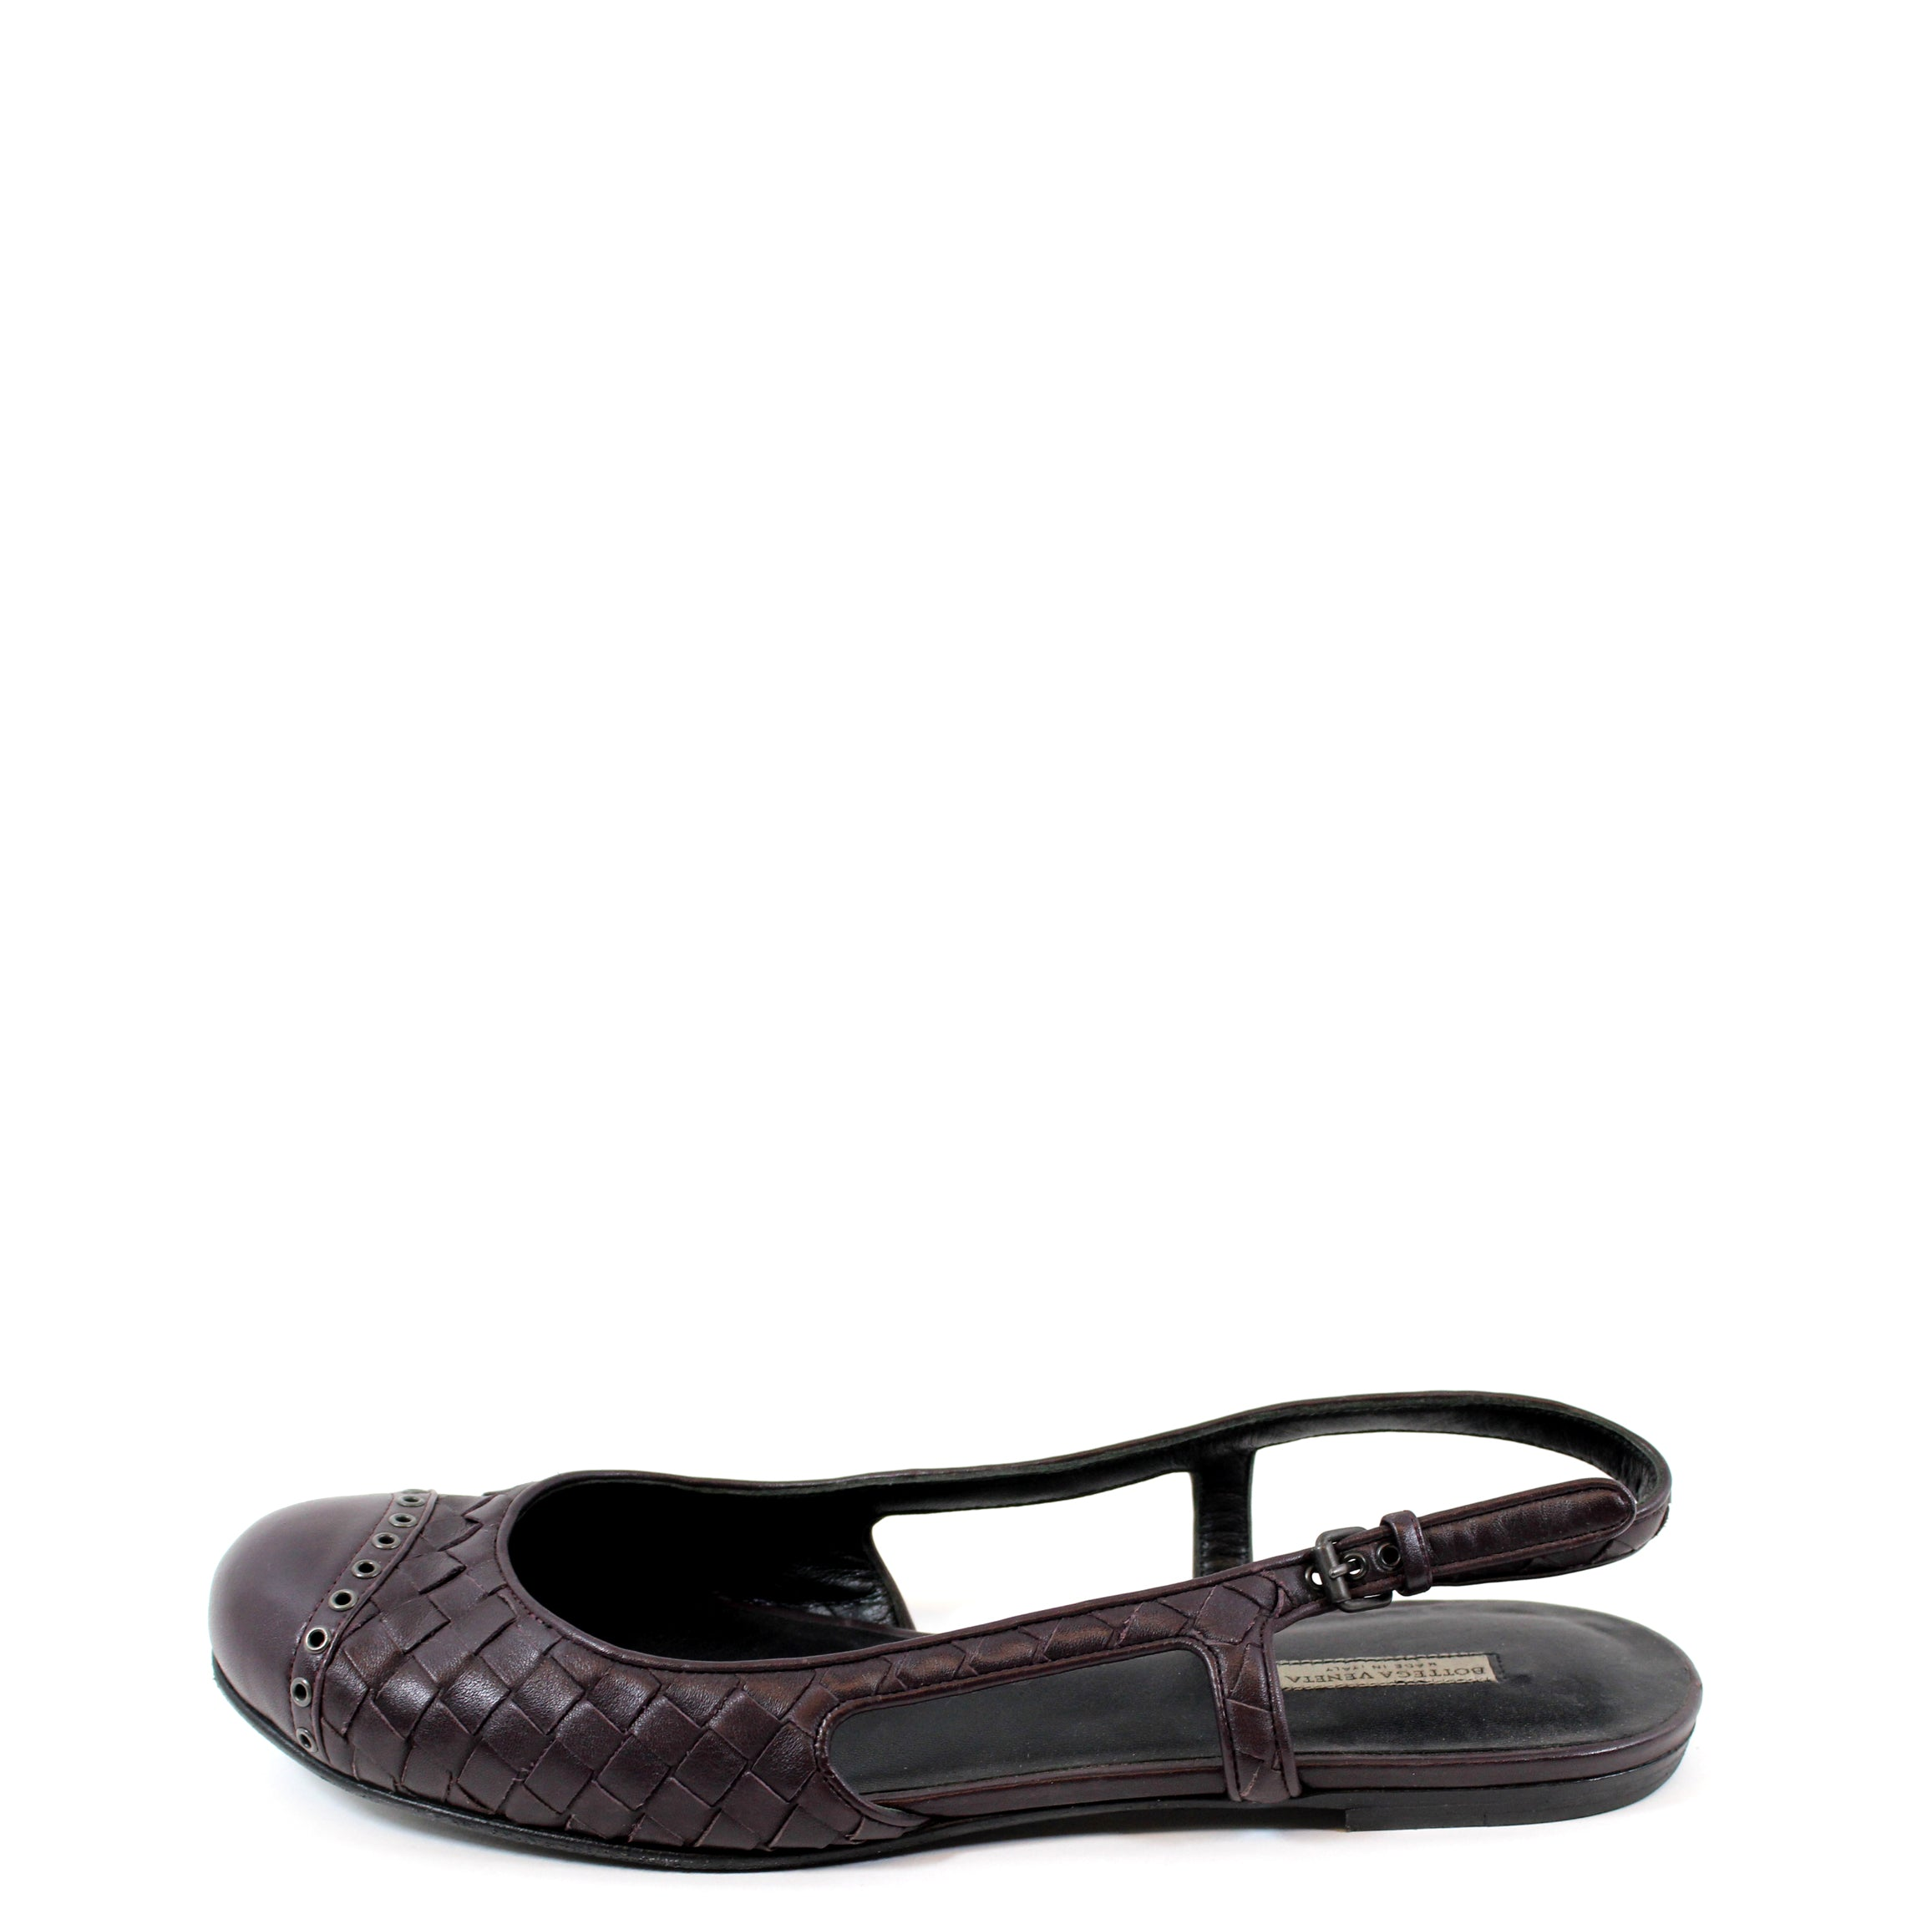 Bottega Veneta Eggplant Leather Woven Flats (Size 39.5)